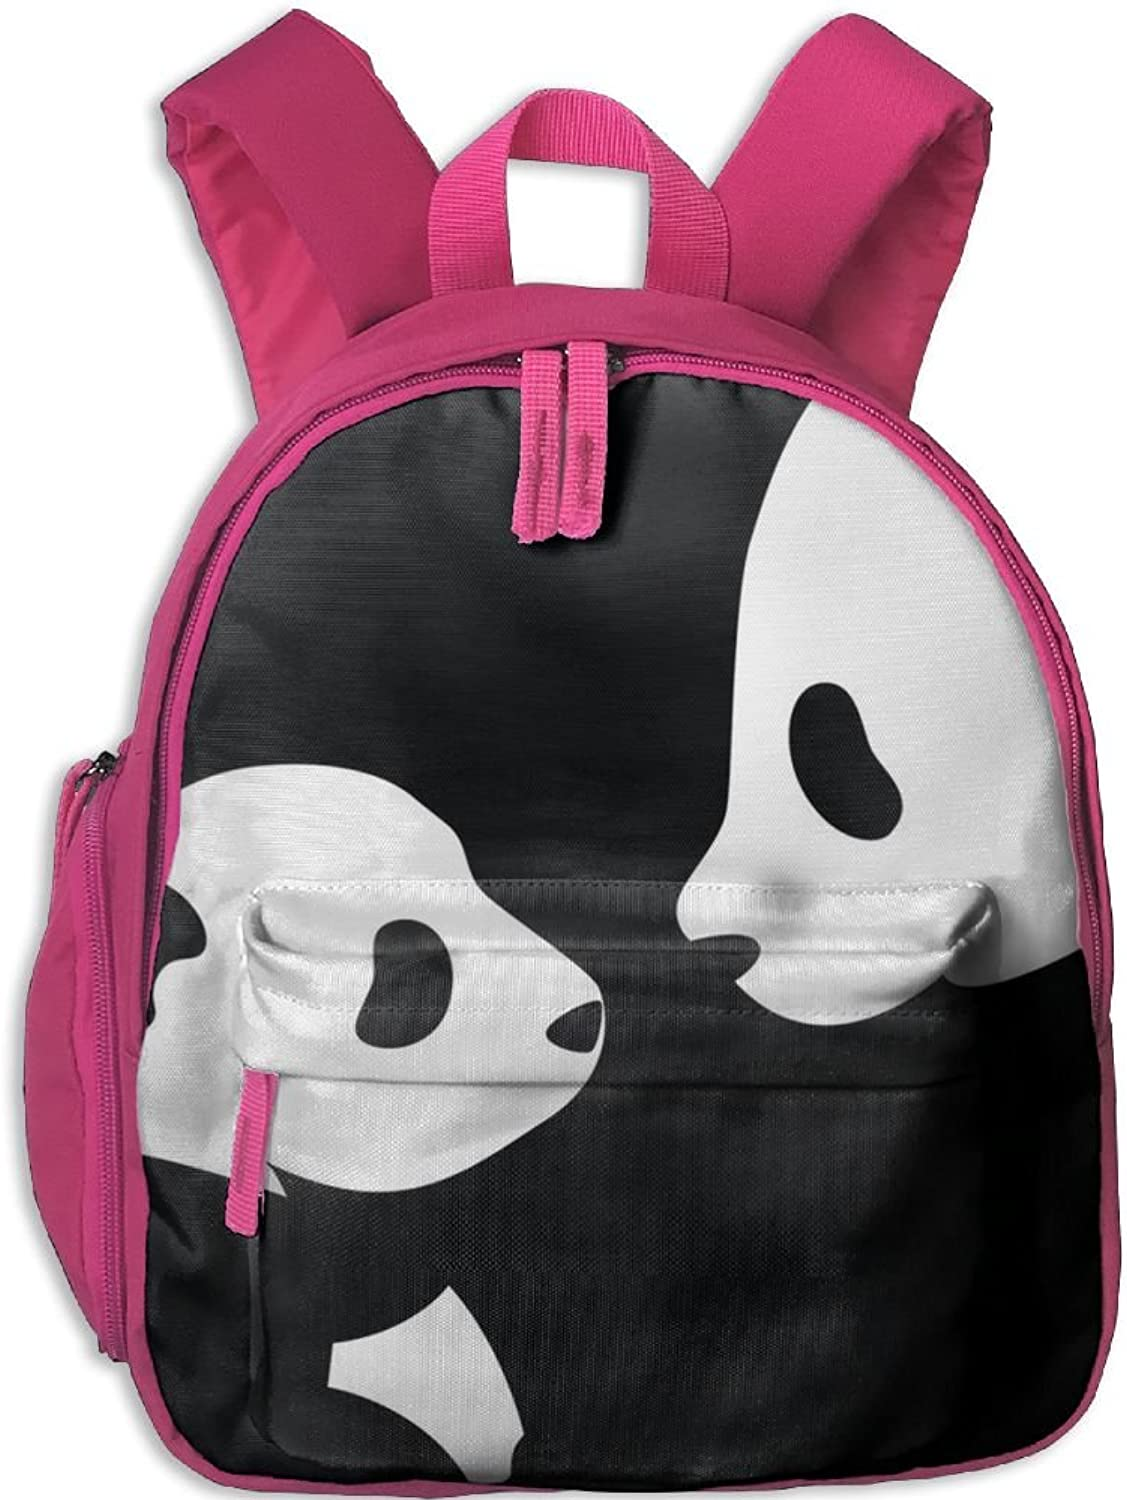 Pinta Cute Panda Cub Cool School Book Bag Backpacks for Girl's Boy's